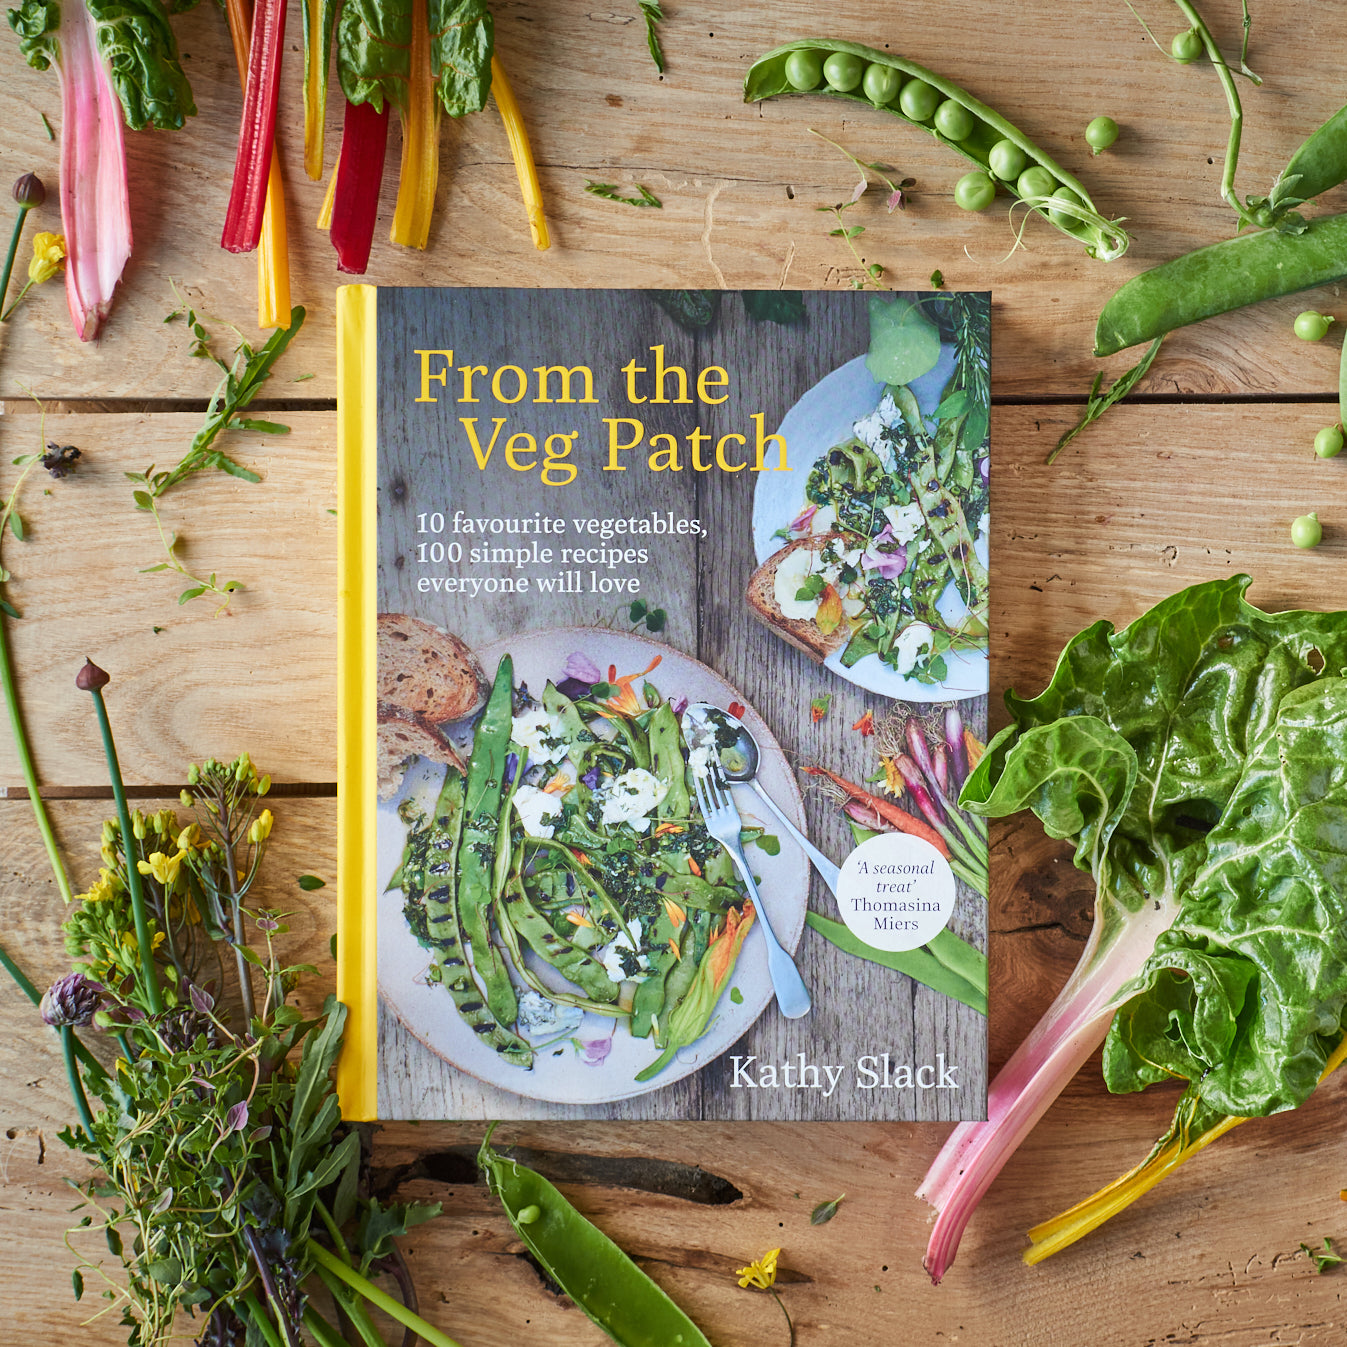 From the Veg Patch book